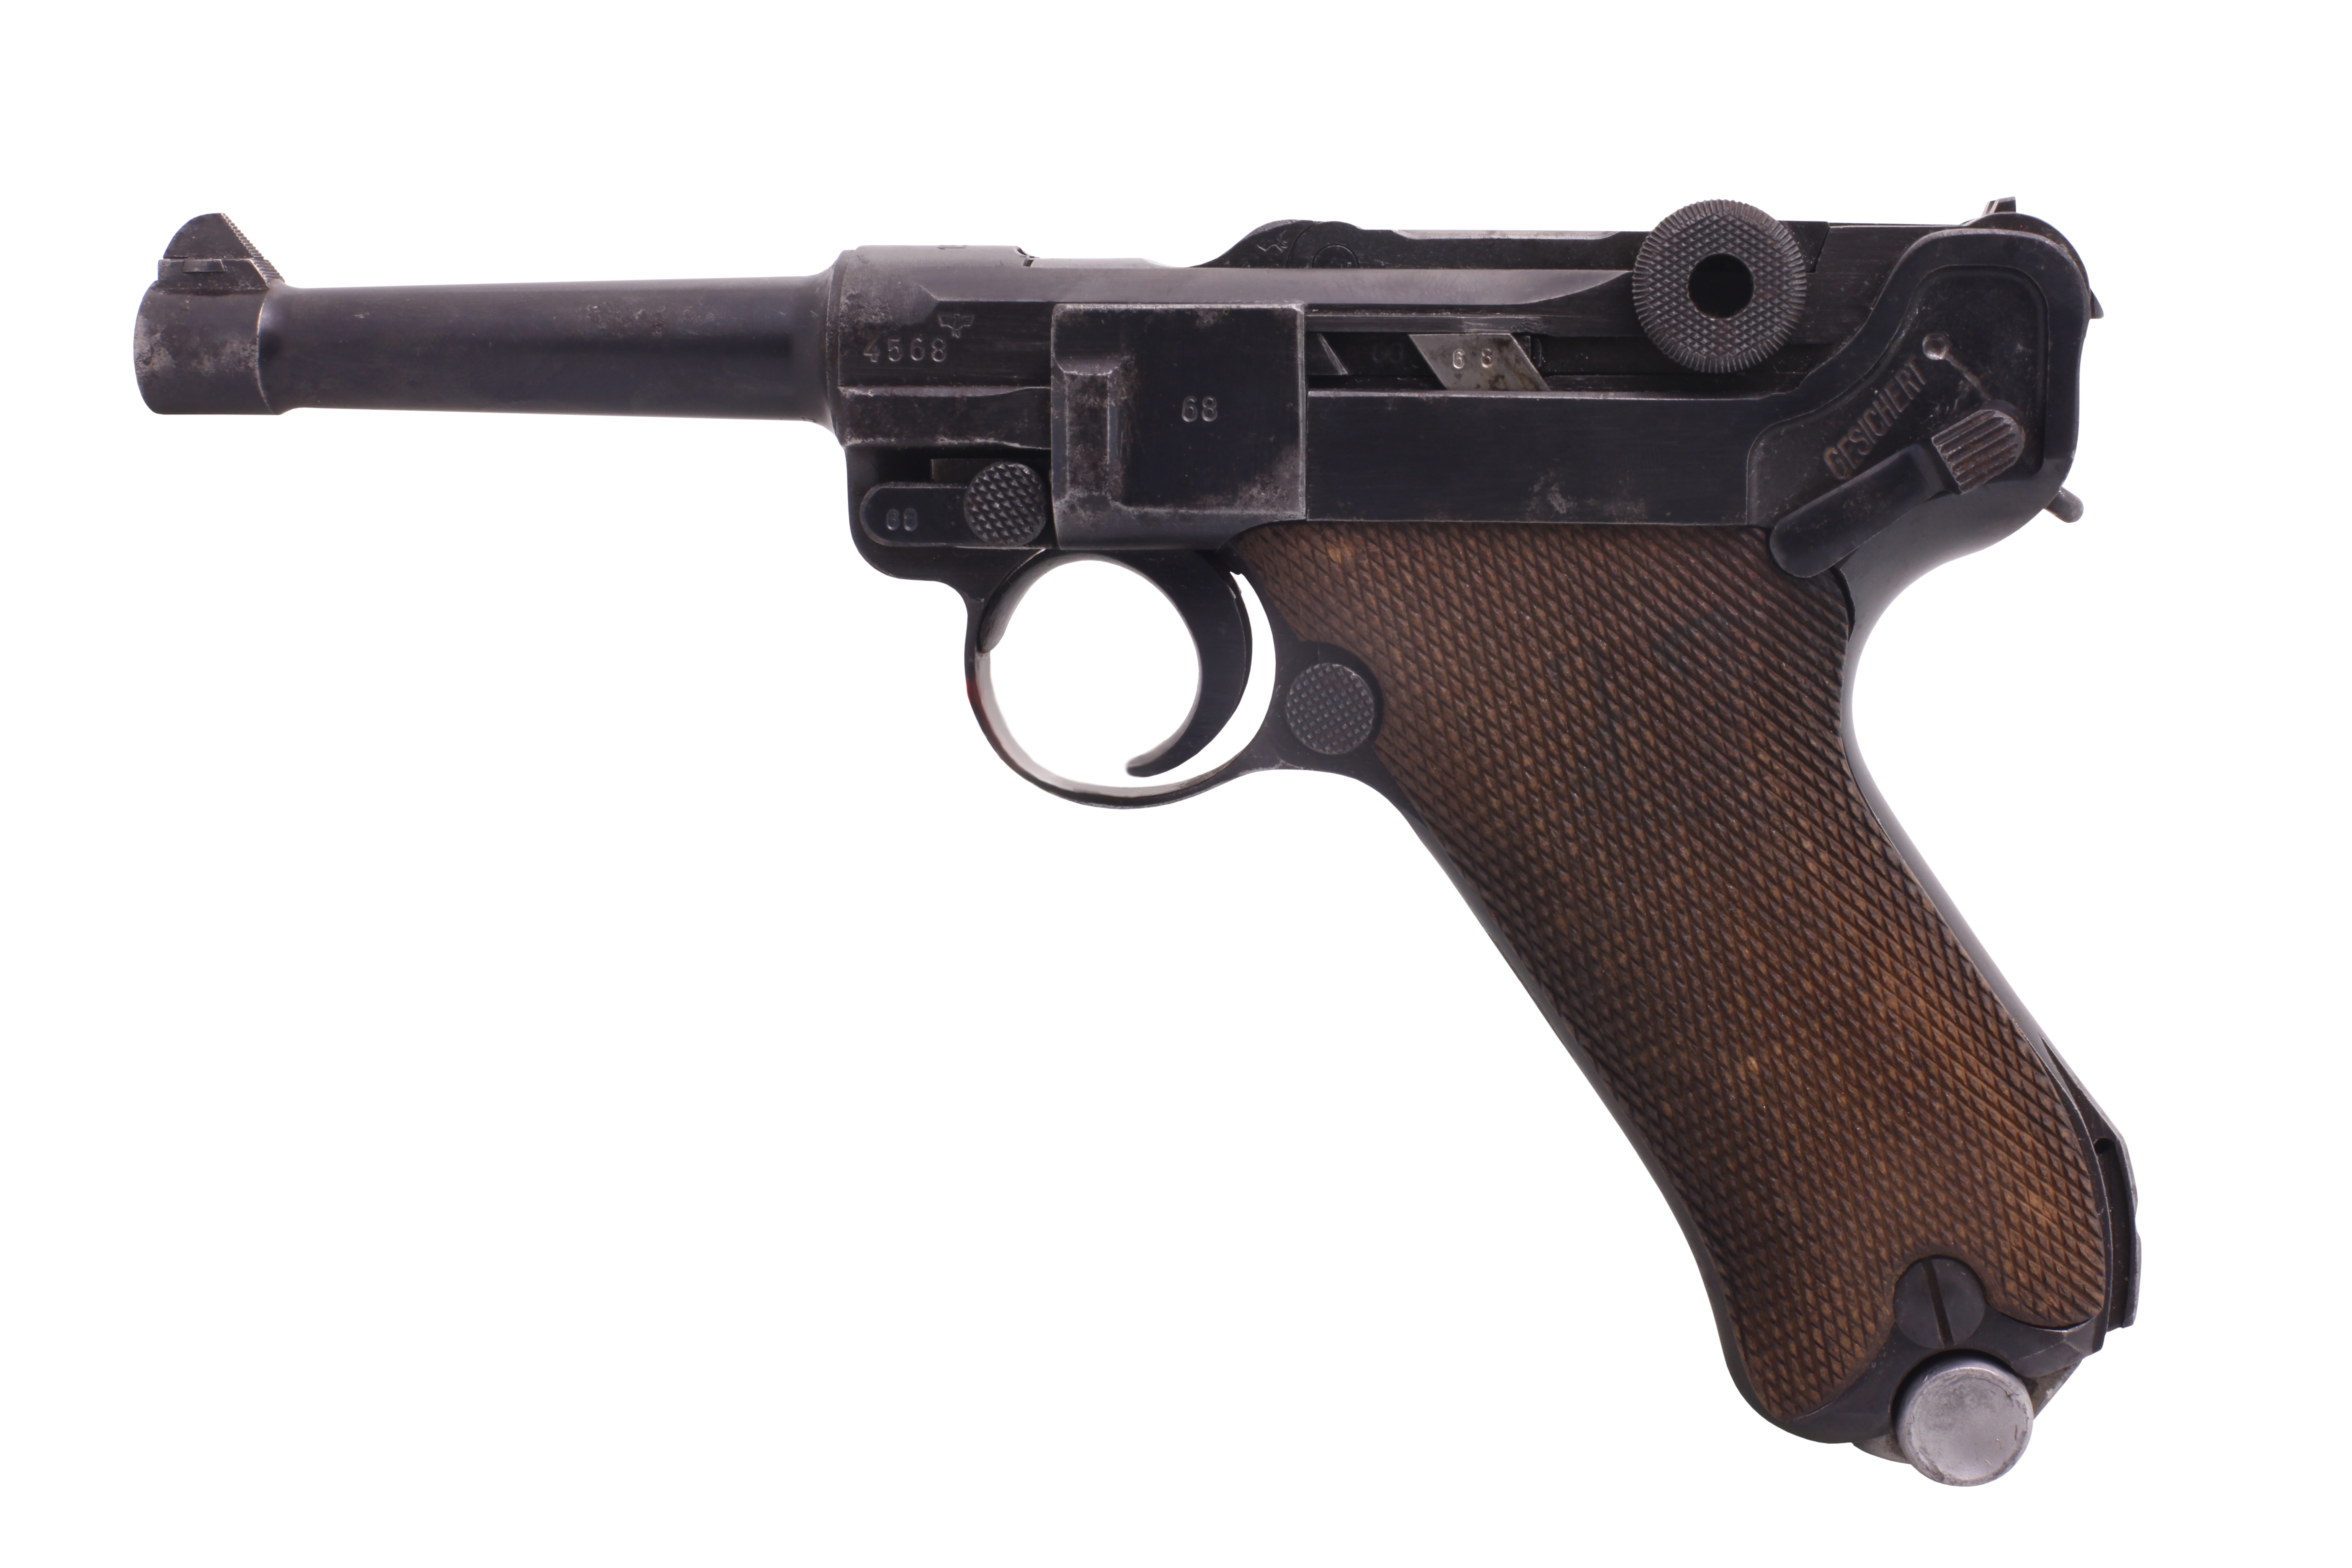 11 iconic weapons of the Second World War